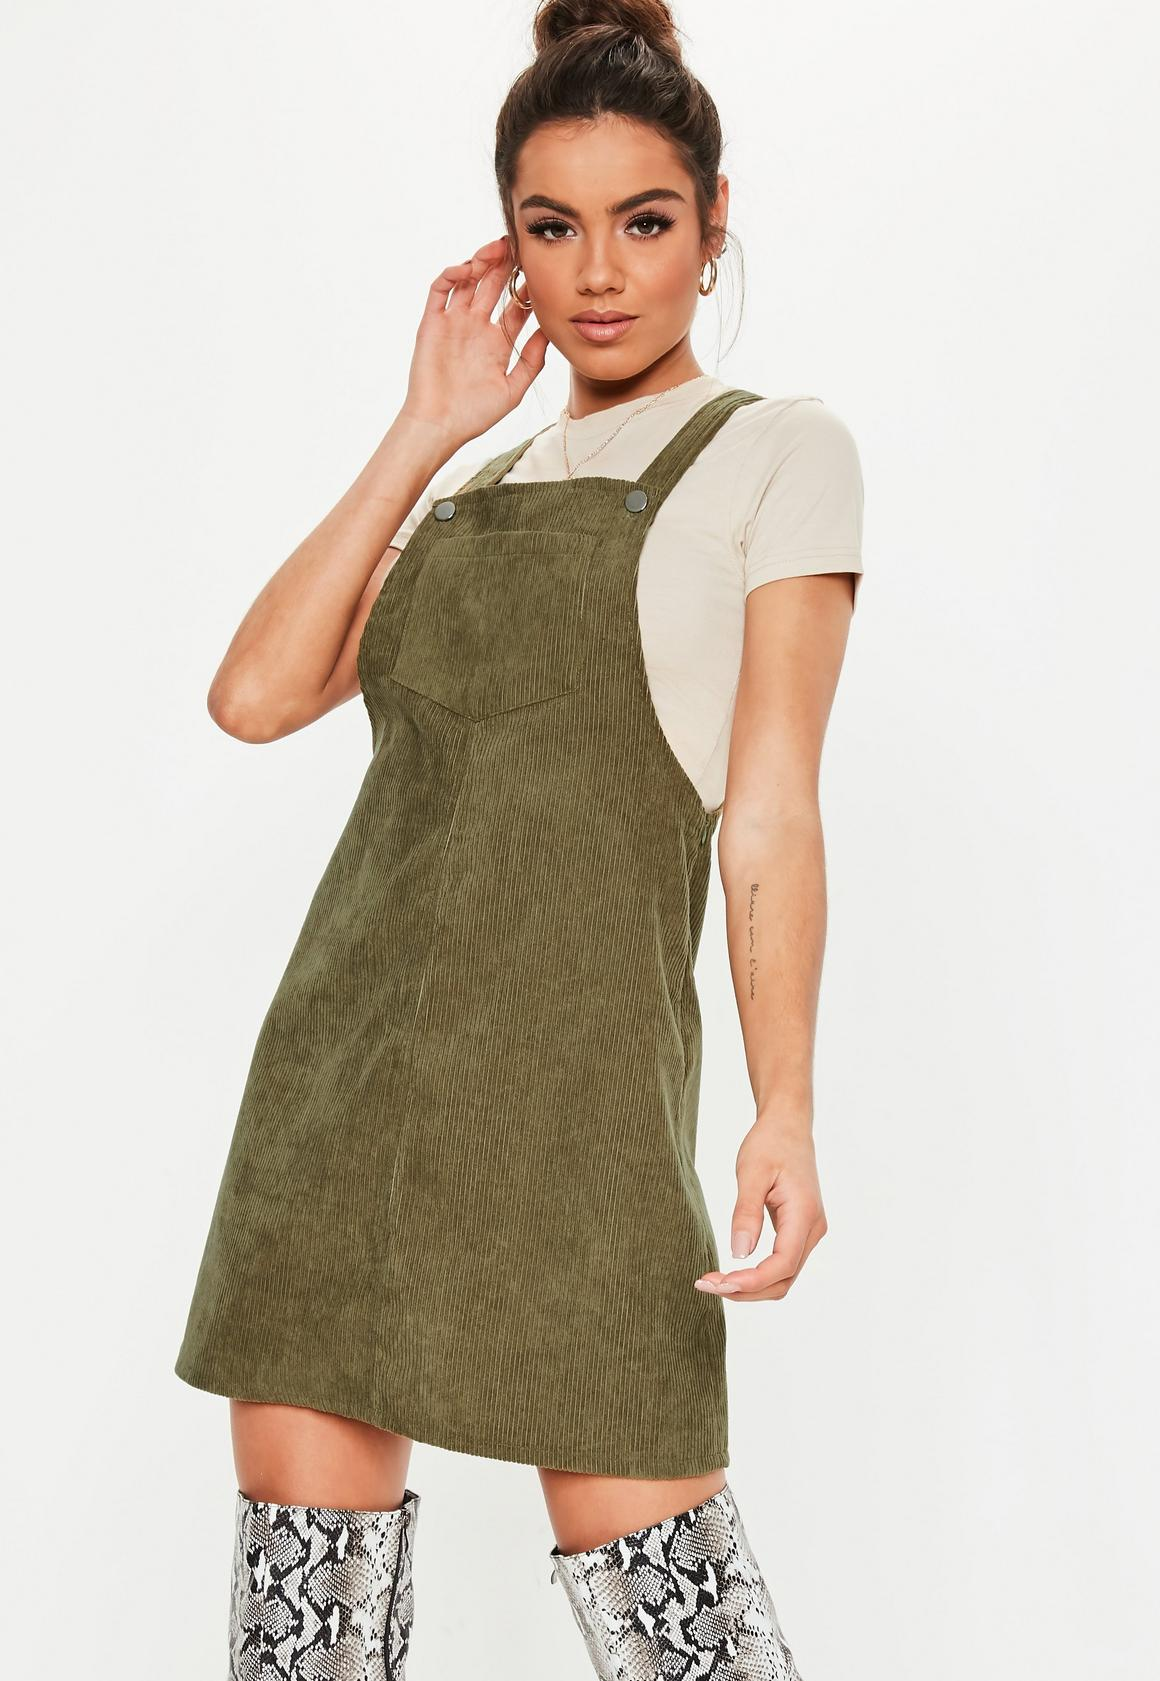 low price sale forefront of the times temperament shoes Khaki Cord Pinafore Dress